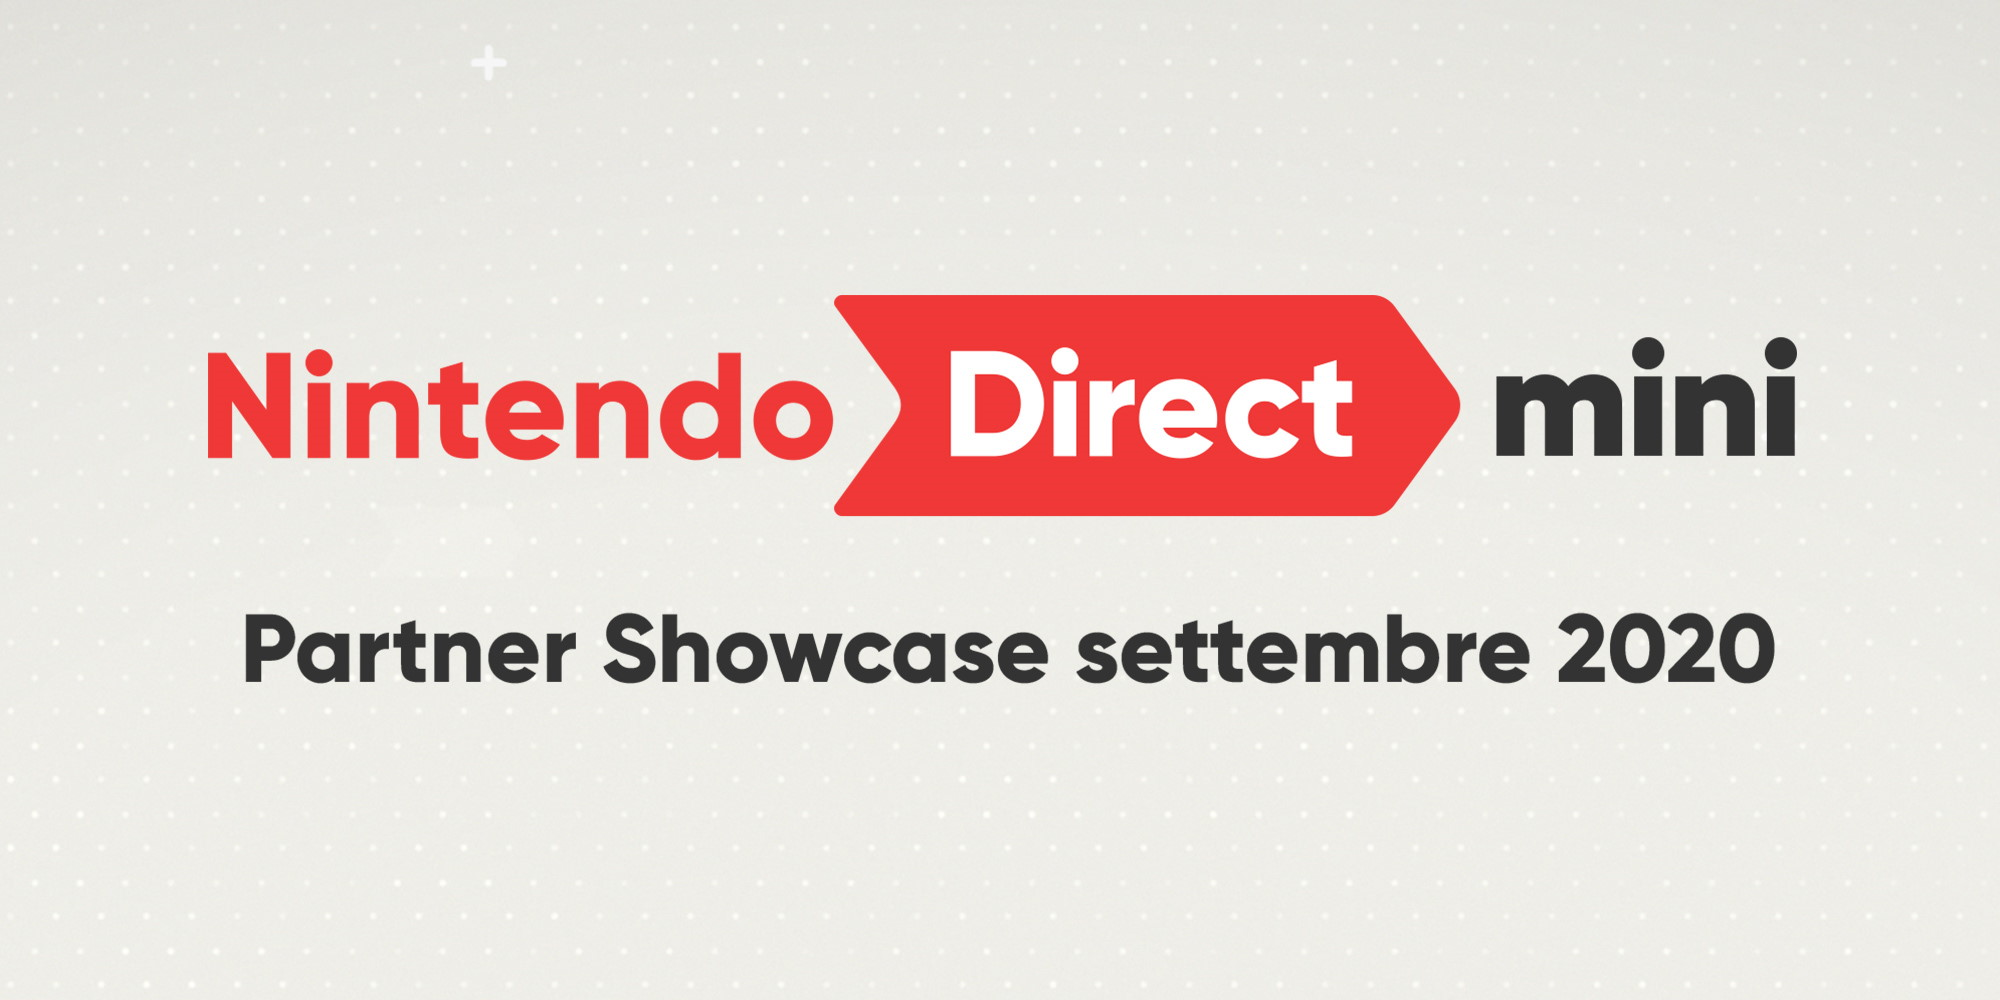 Nintendo Direct Mini Partner Showcase settembre 2020